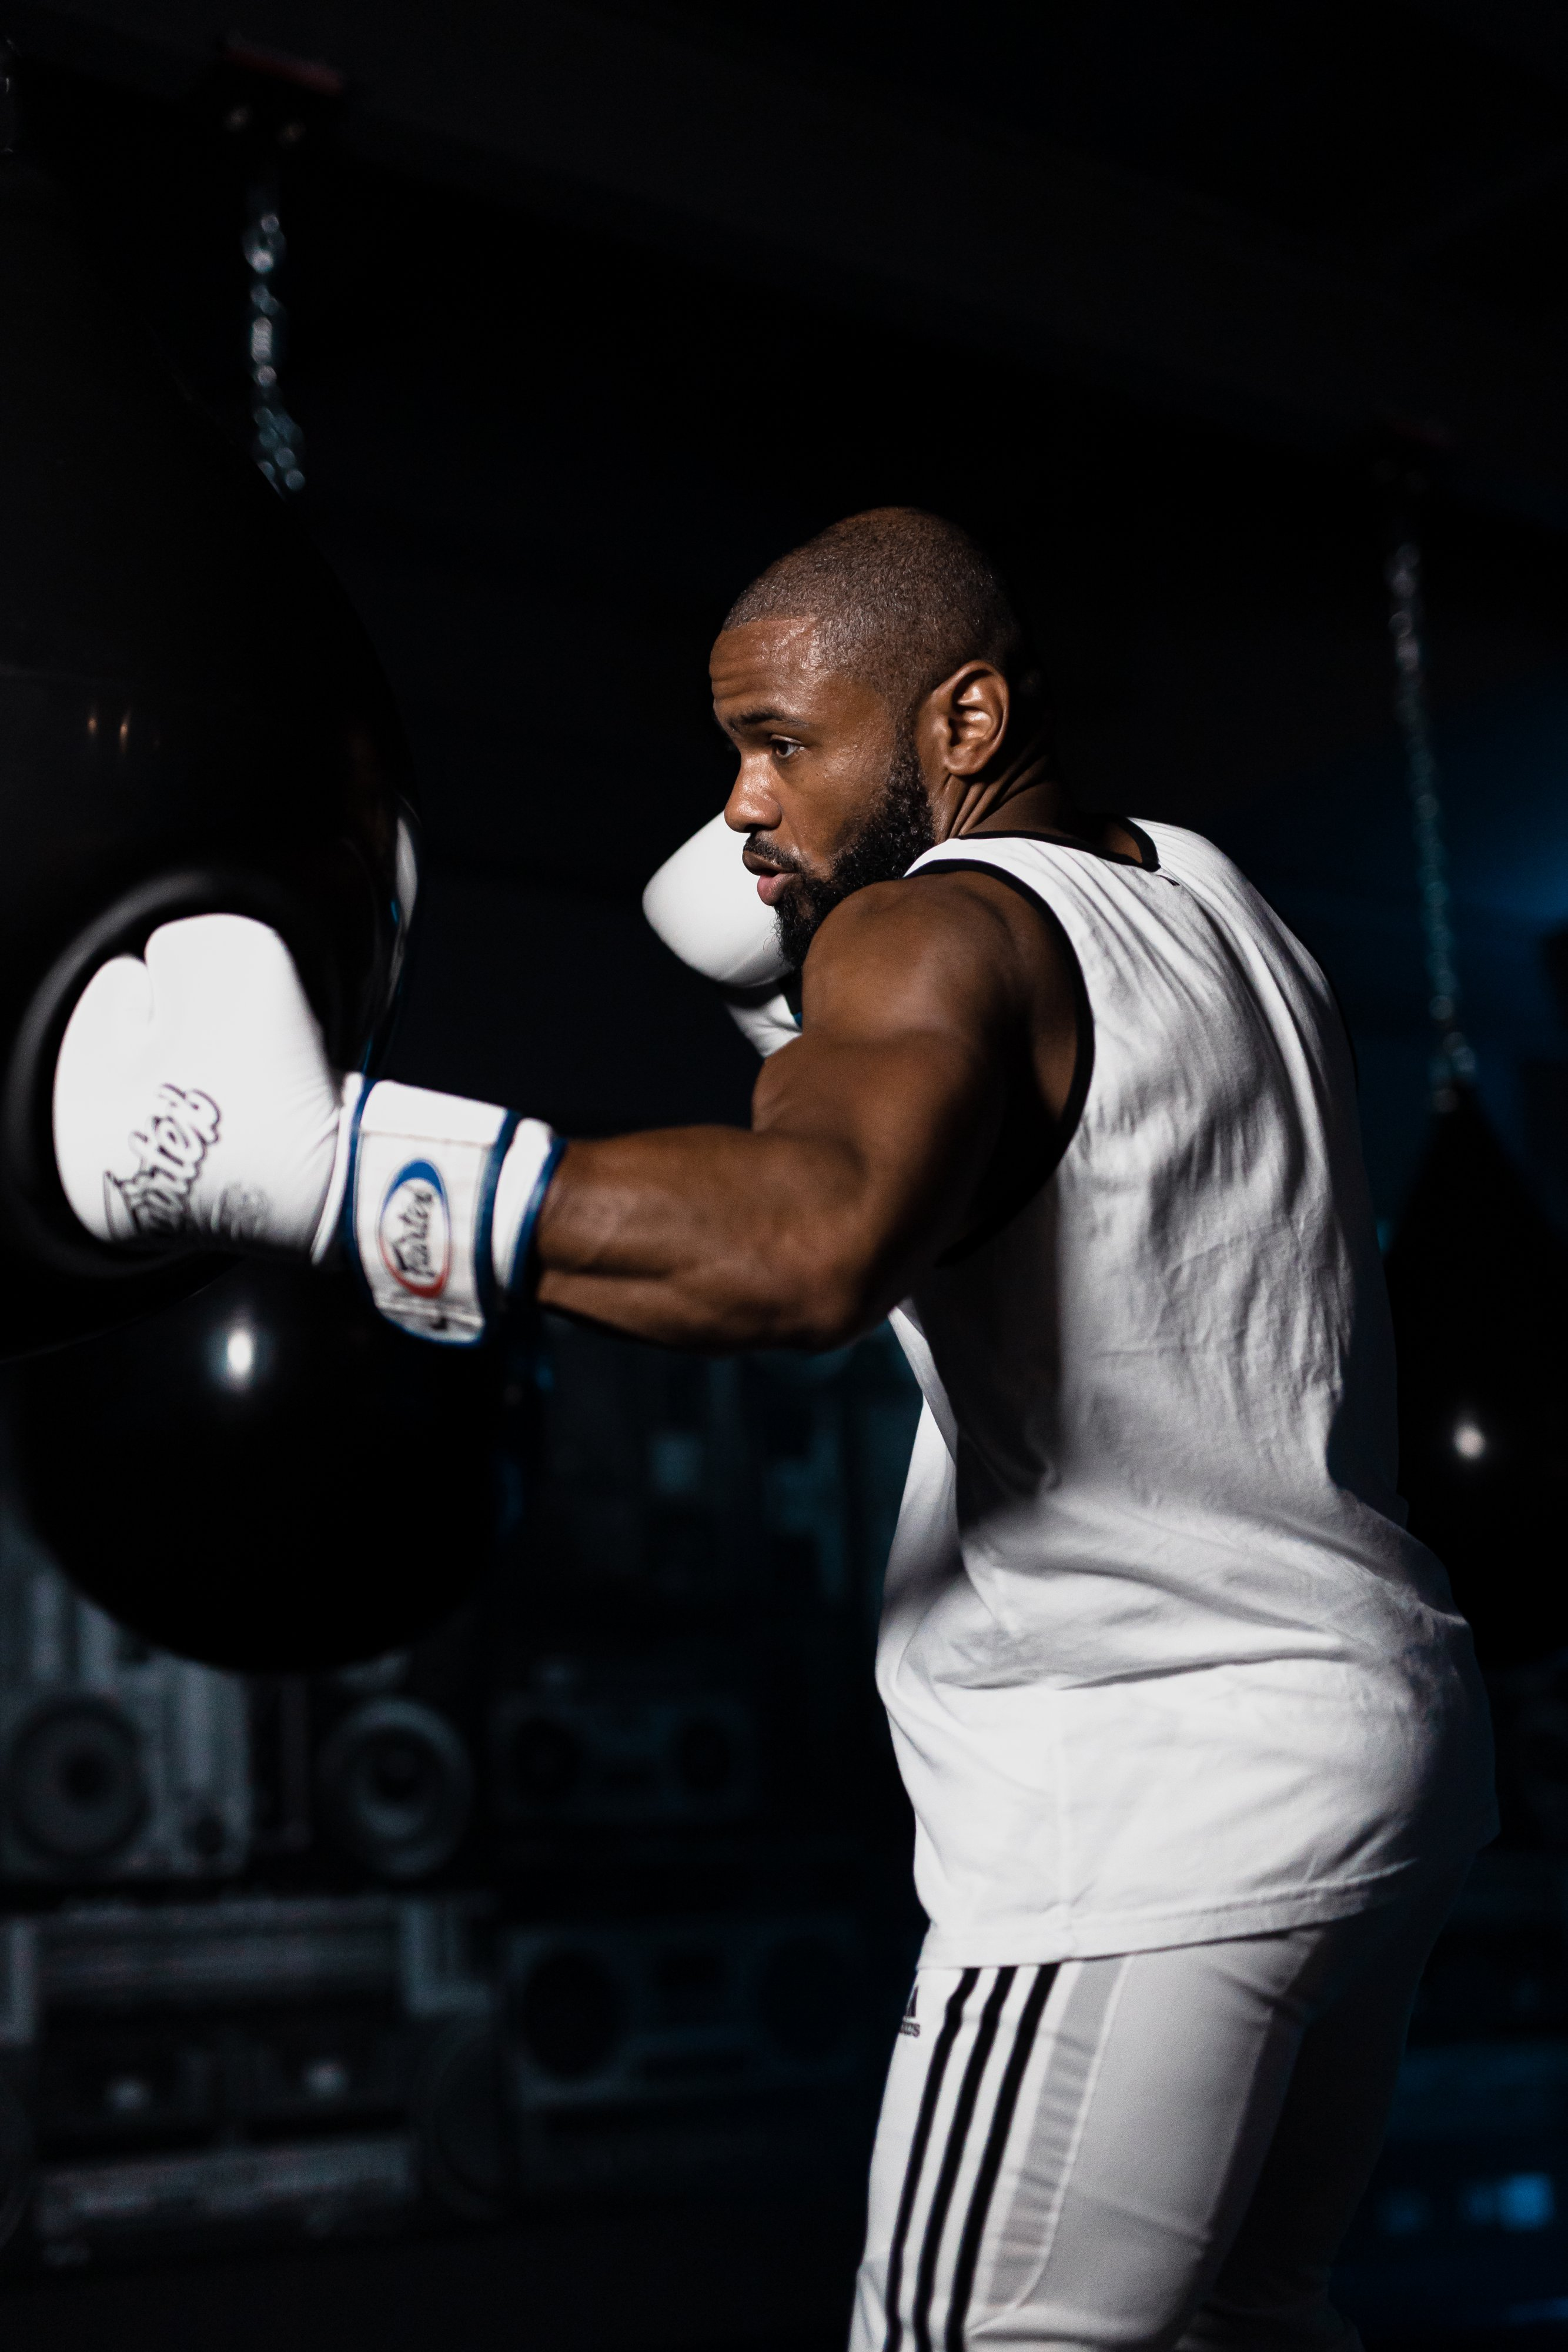 Co-founder Reggie Smith. Photo courtesy of BOOMBOX Boxing Club.